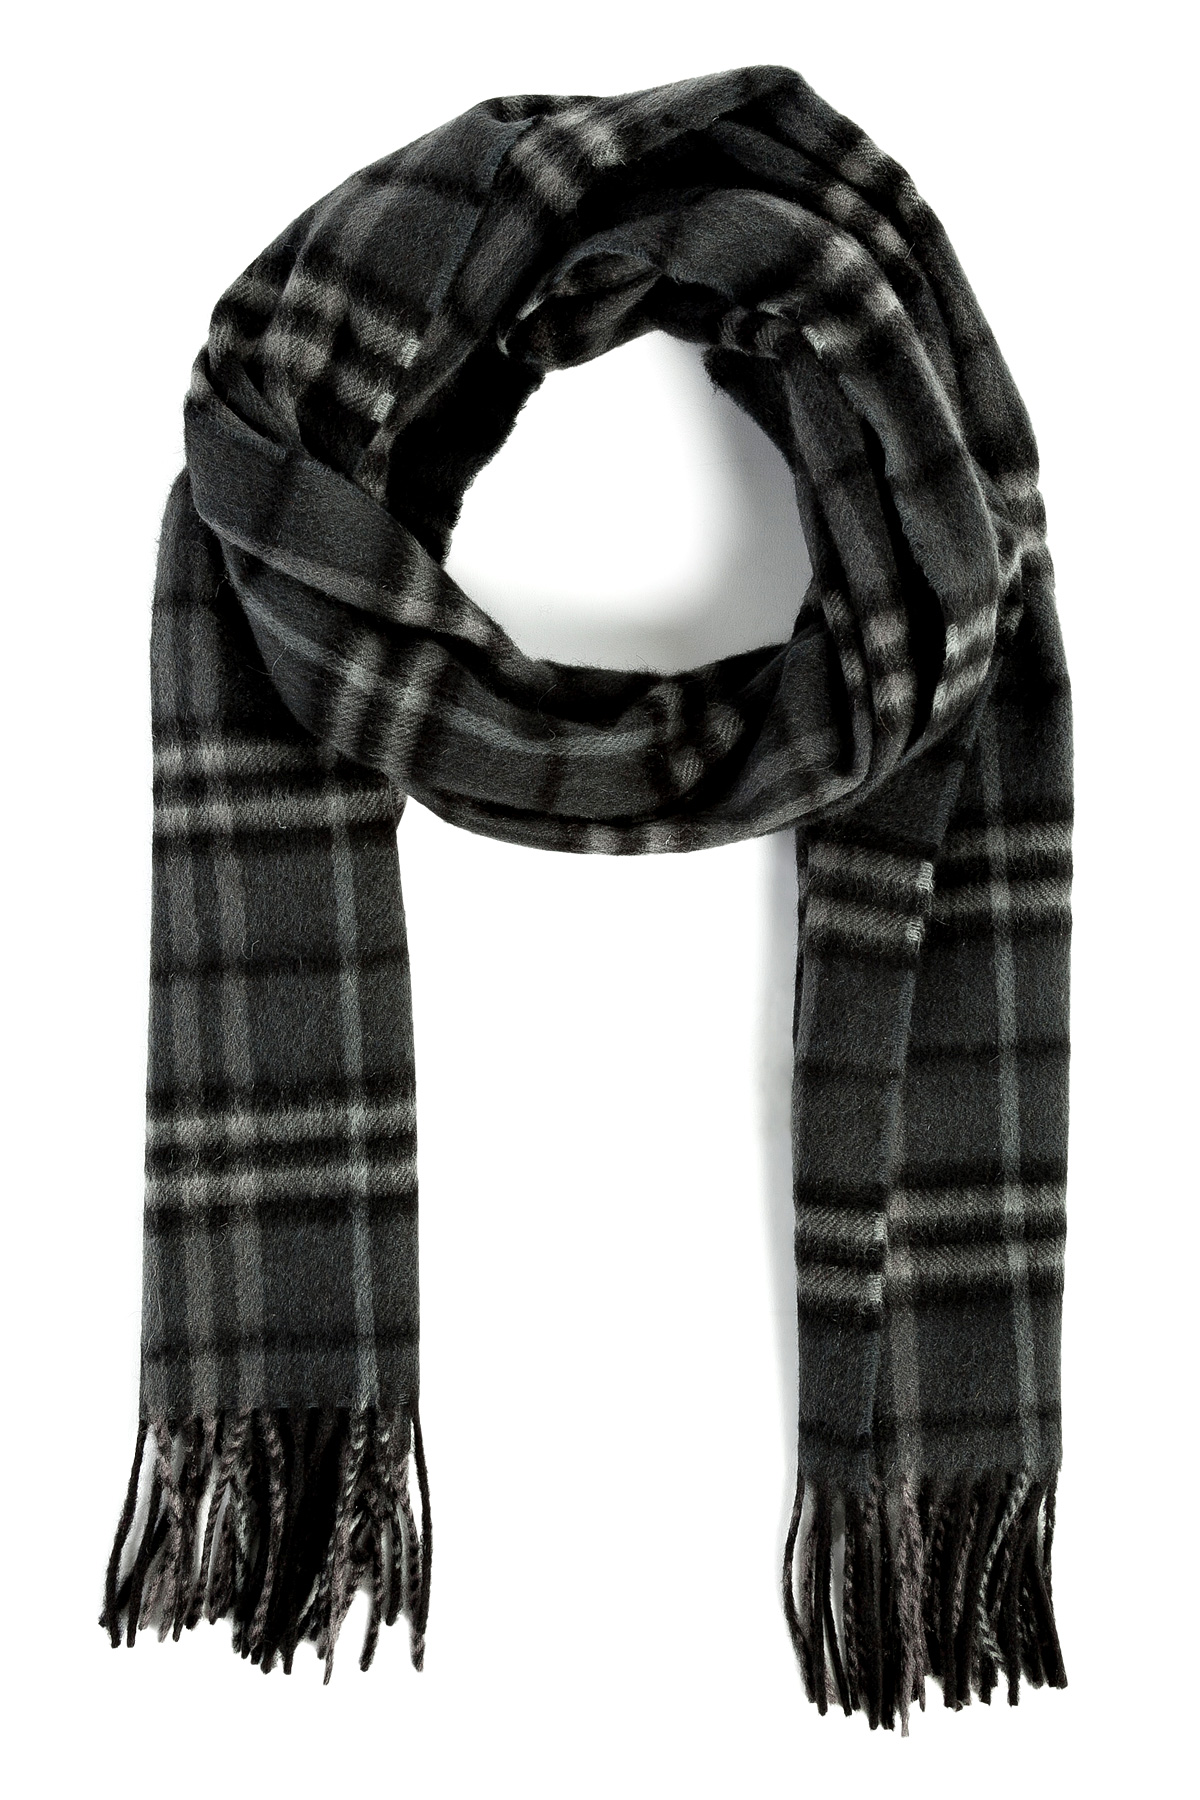 France Burberry Scarf Knitting Pattern Versions 5e66d 8f469